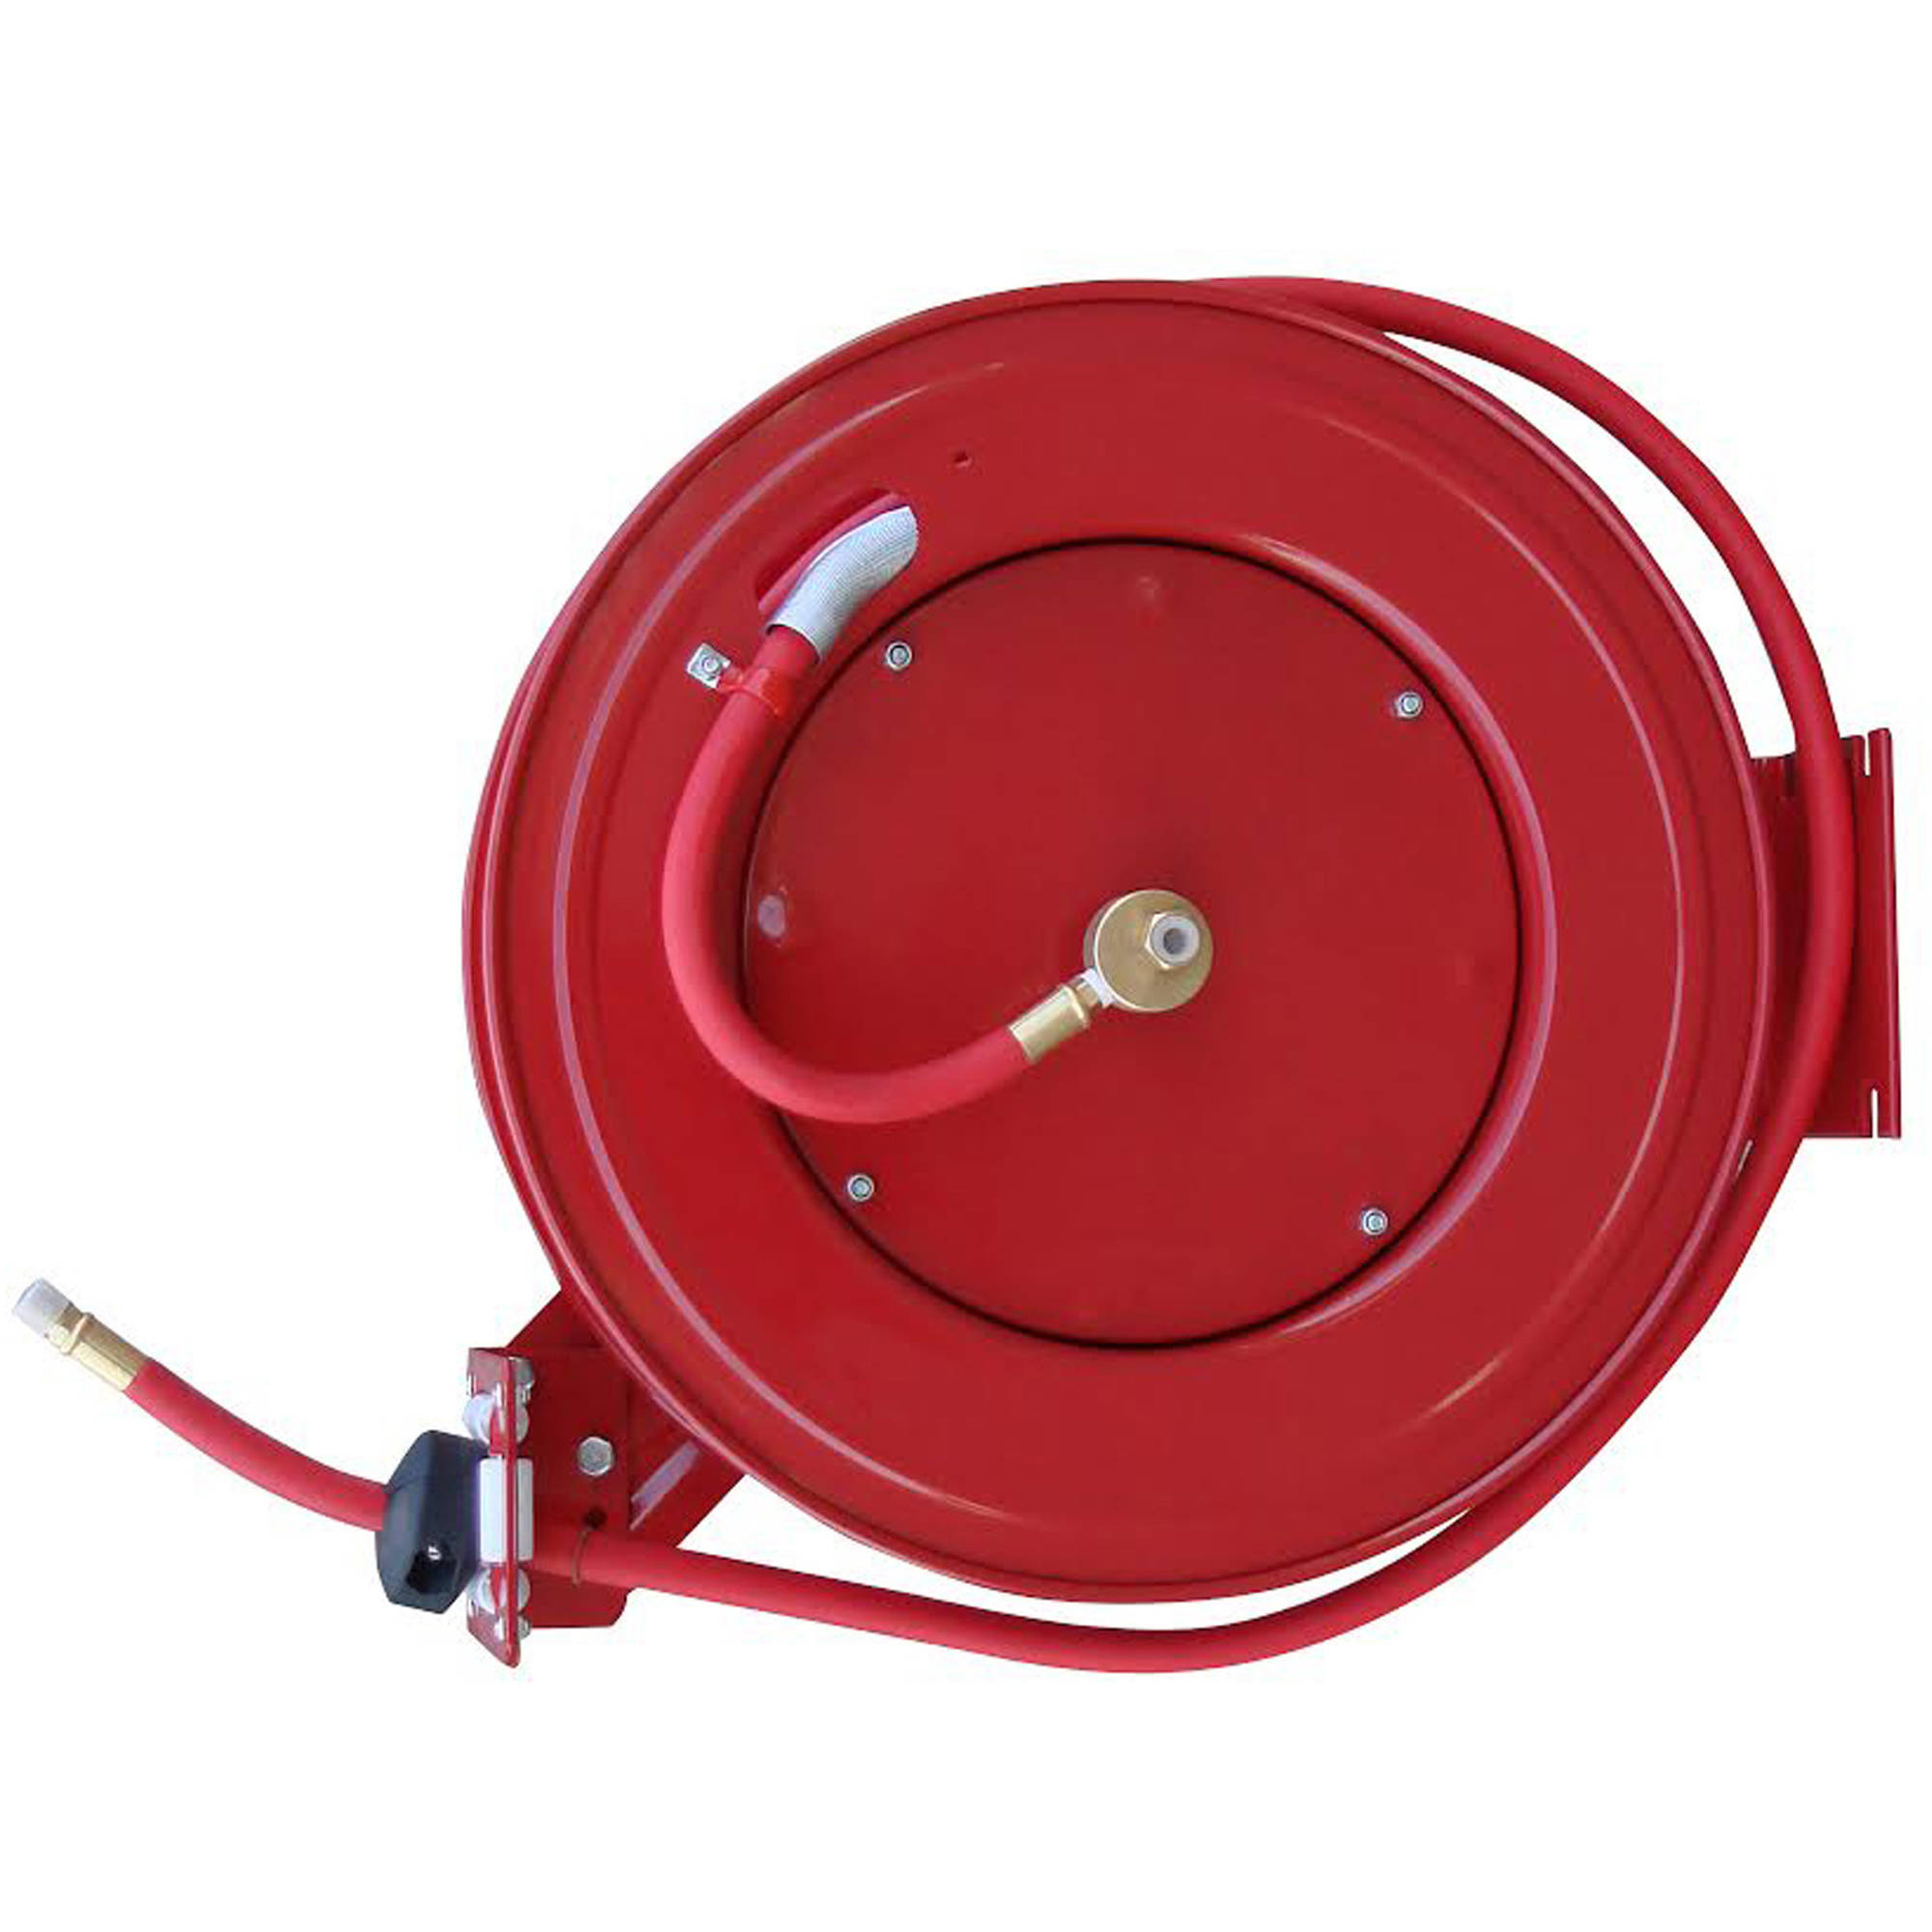 Black Bull 50' Retractable Air Hose Reel with Auto Rewind